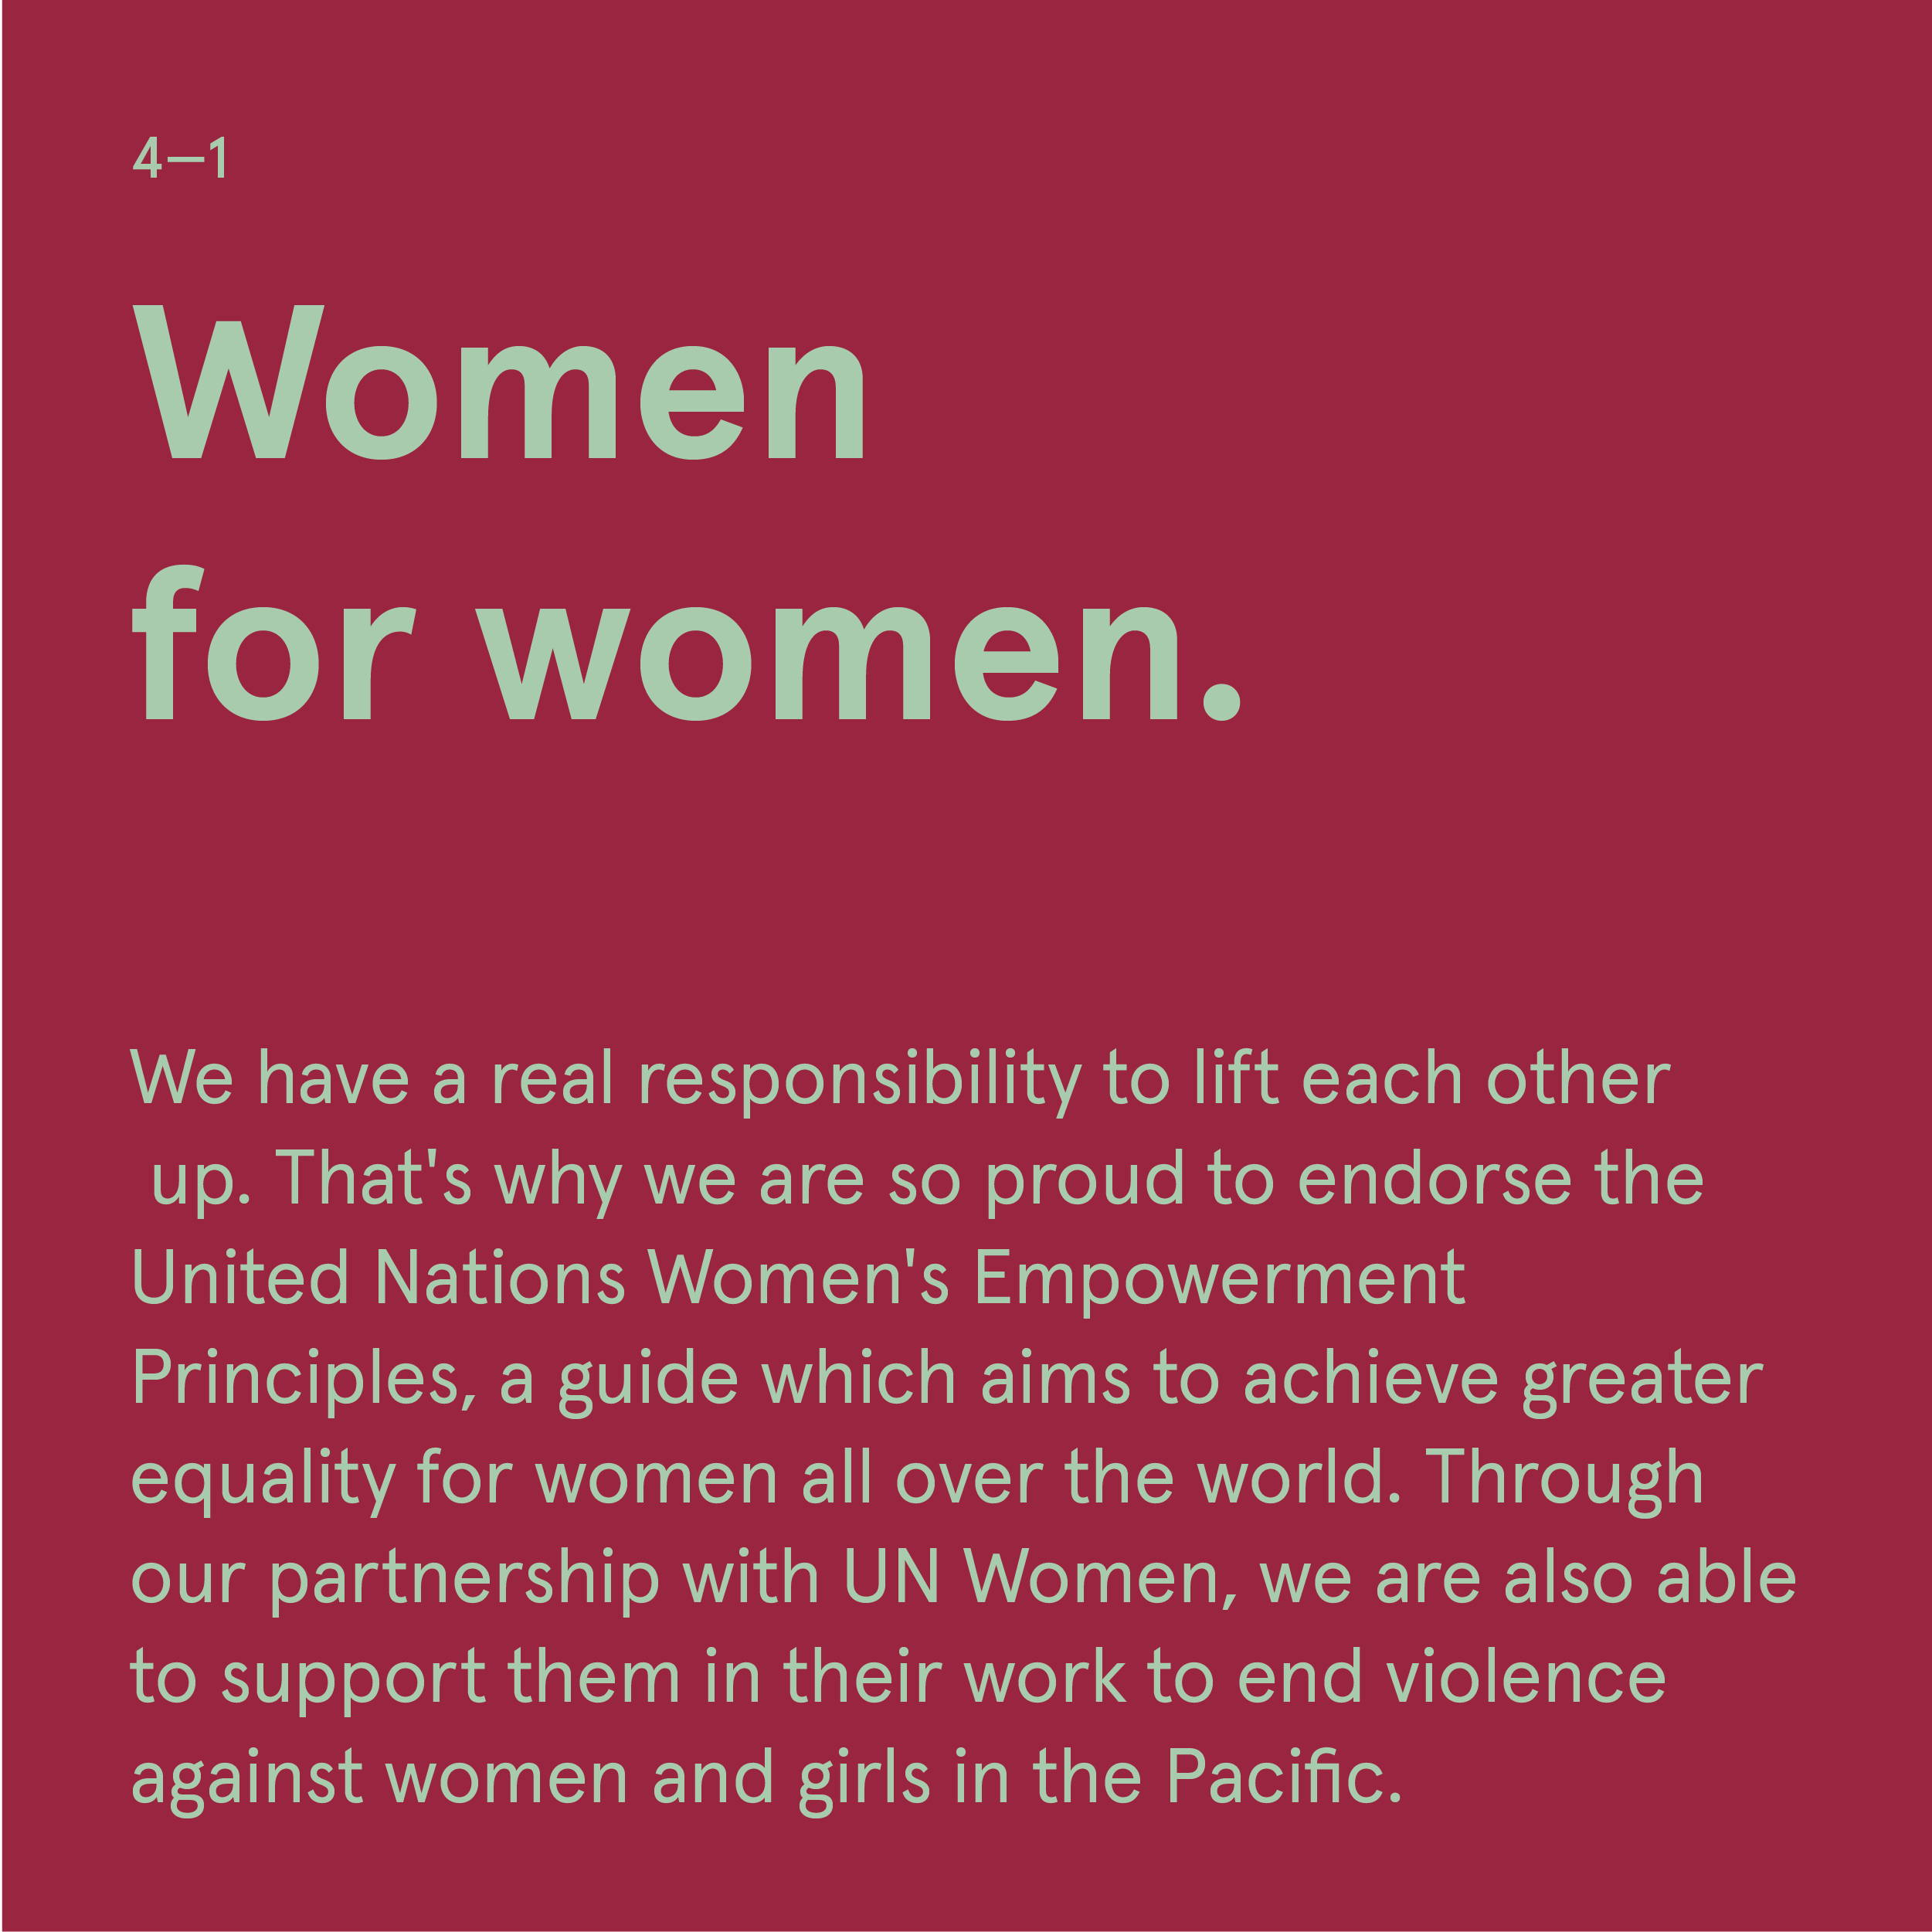 Sub-heading:  Women for Women.   Copy:  We have a real responsibility to lift each other up. That's why we are so proud to endorse the United Nations Women's Empowerment Principles, a guide which aims to achieve greater equality for women all over the world. Through our partnership with UN Women, we are also able to support them in their work to end violence against women and girls in the Pacific.